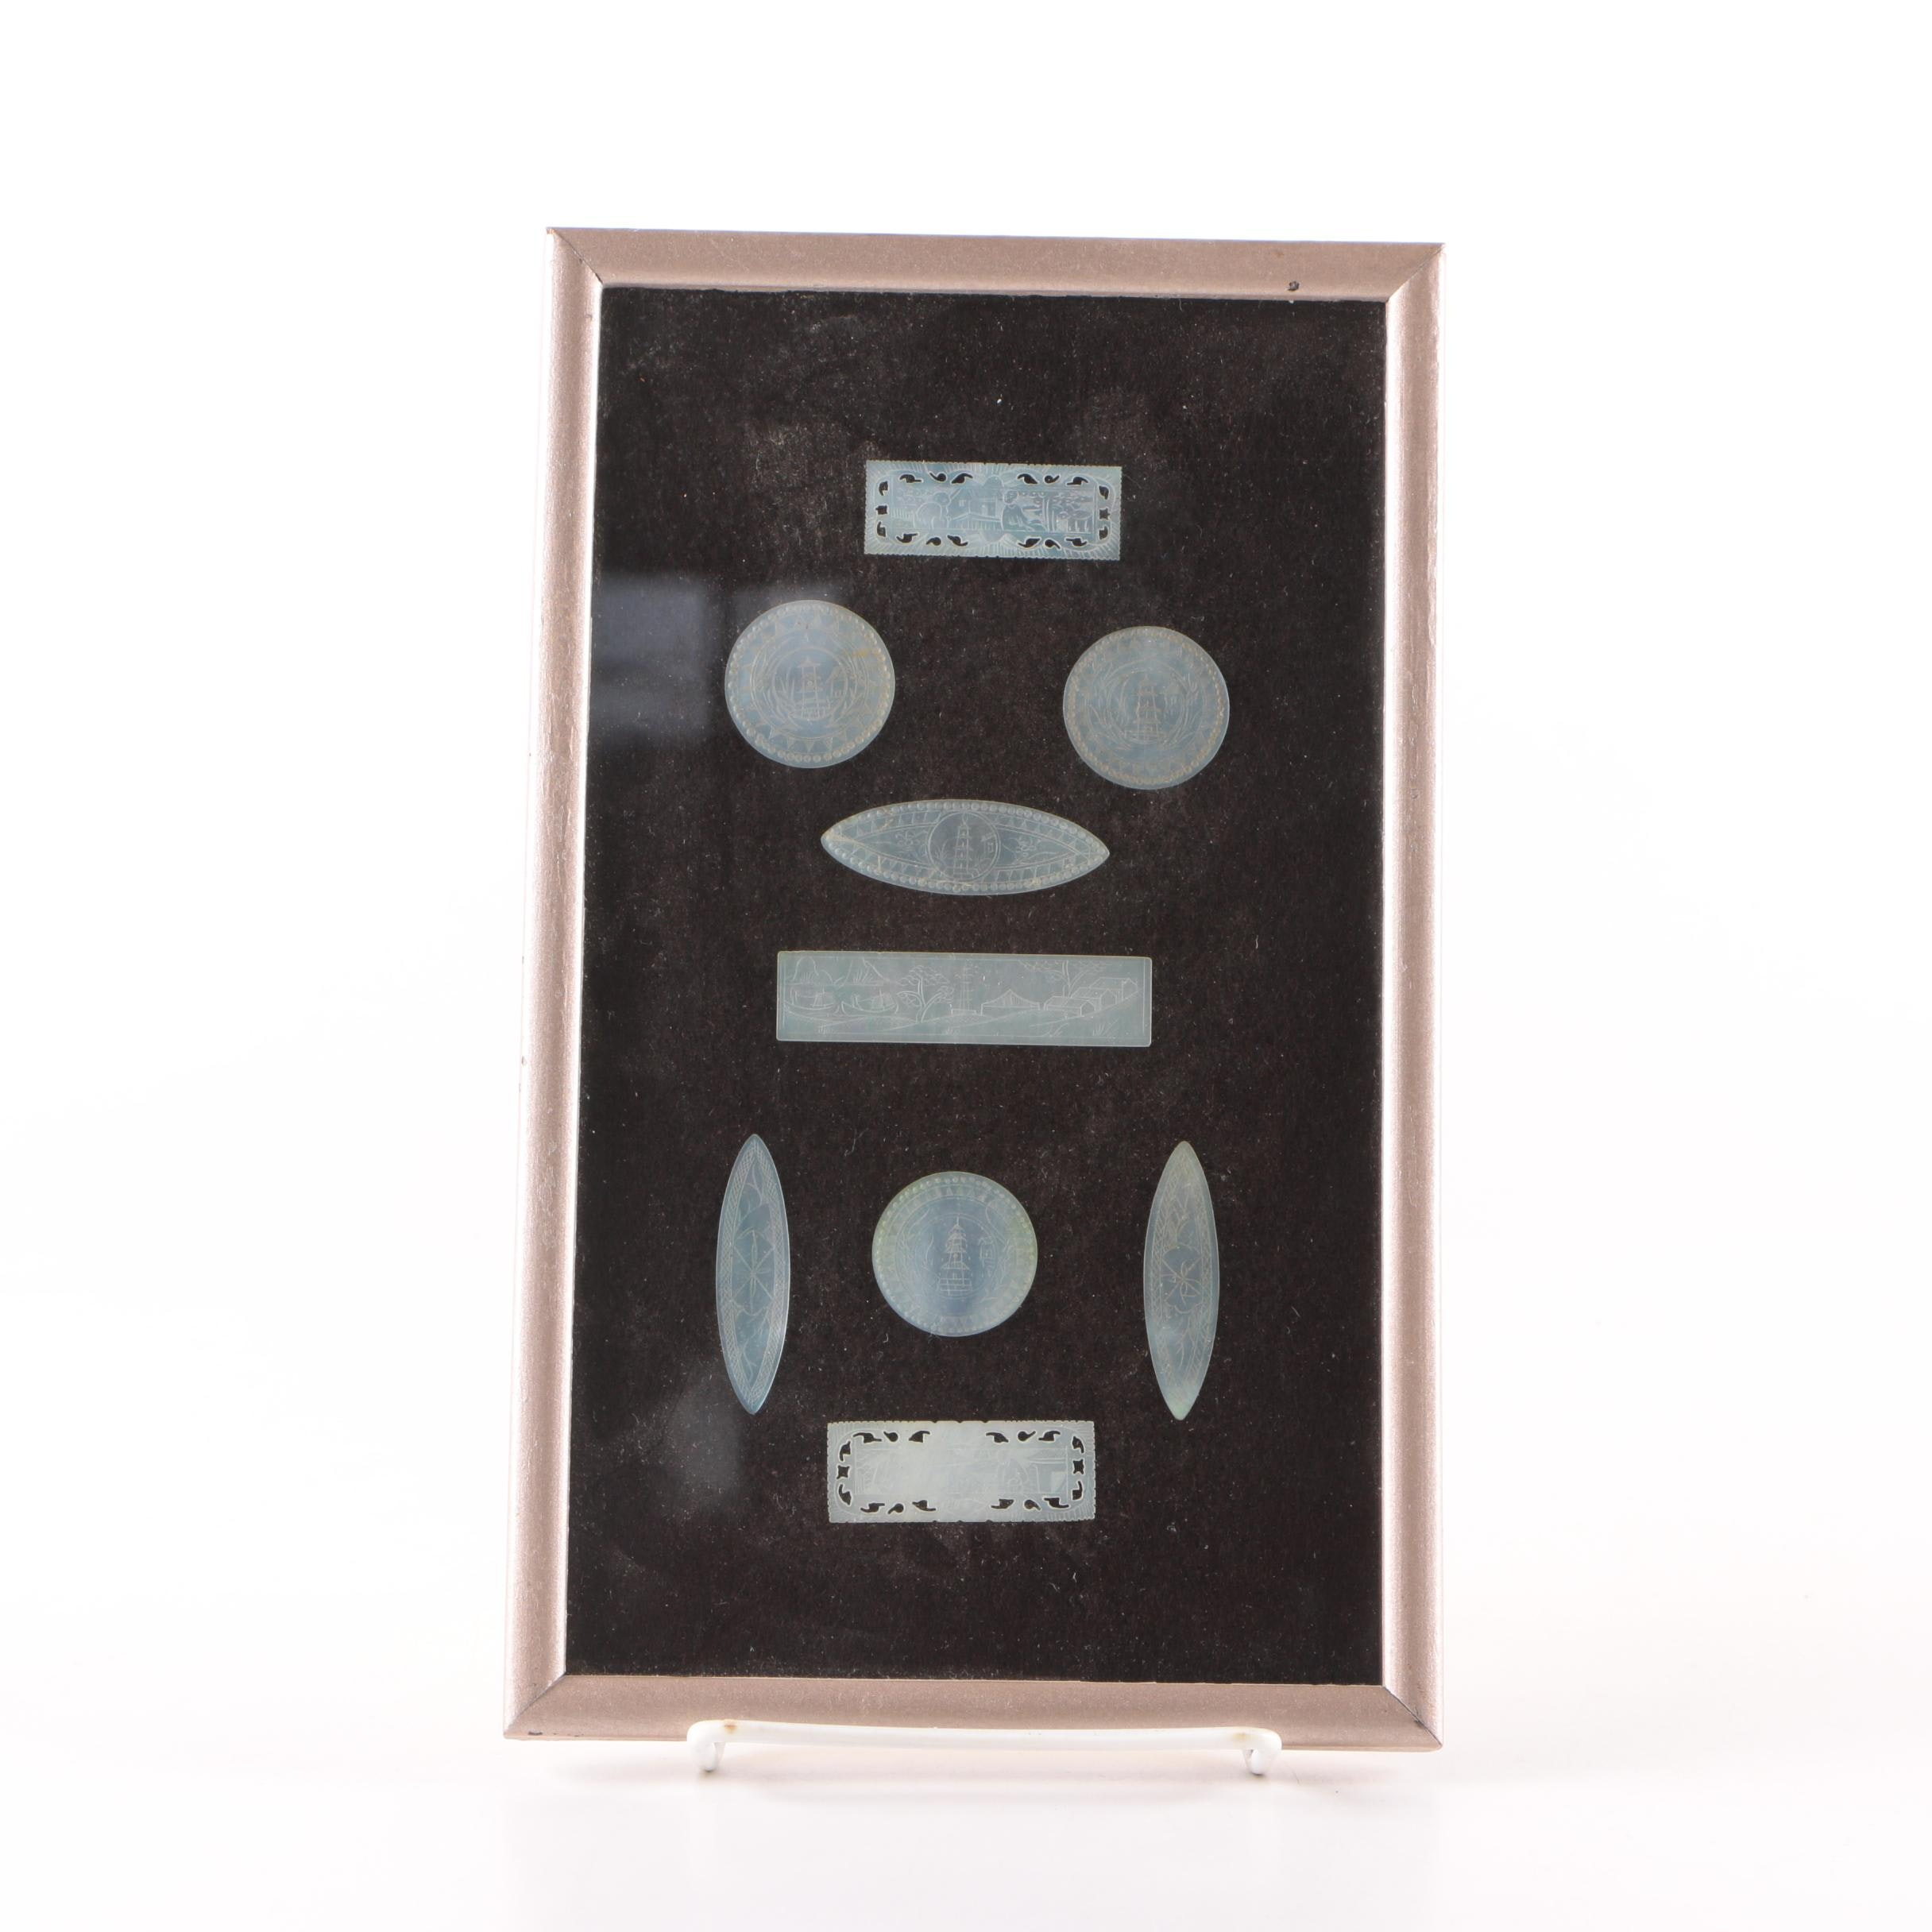 Chinese Mother of Pearl Engraved Gaming Counters In Frame